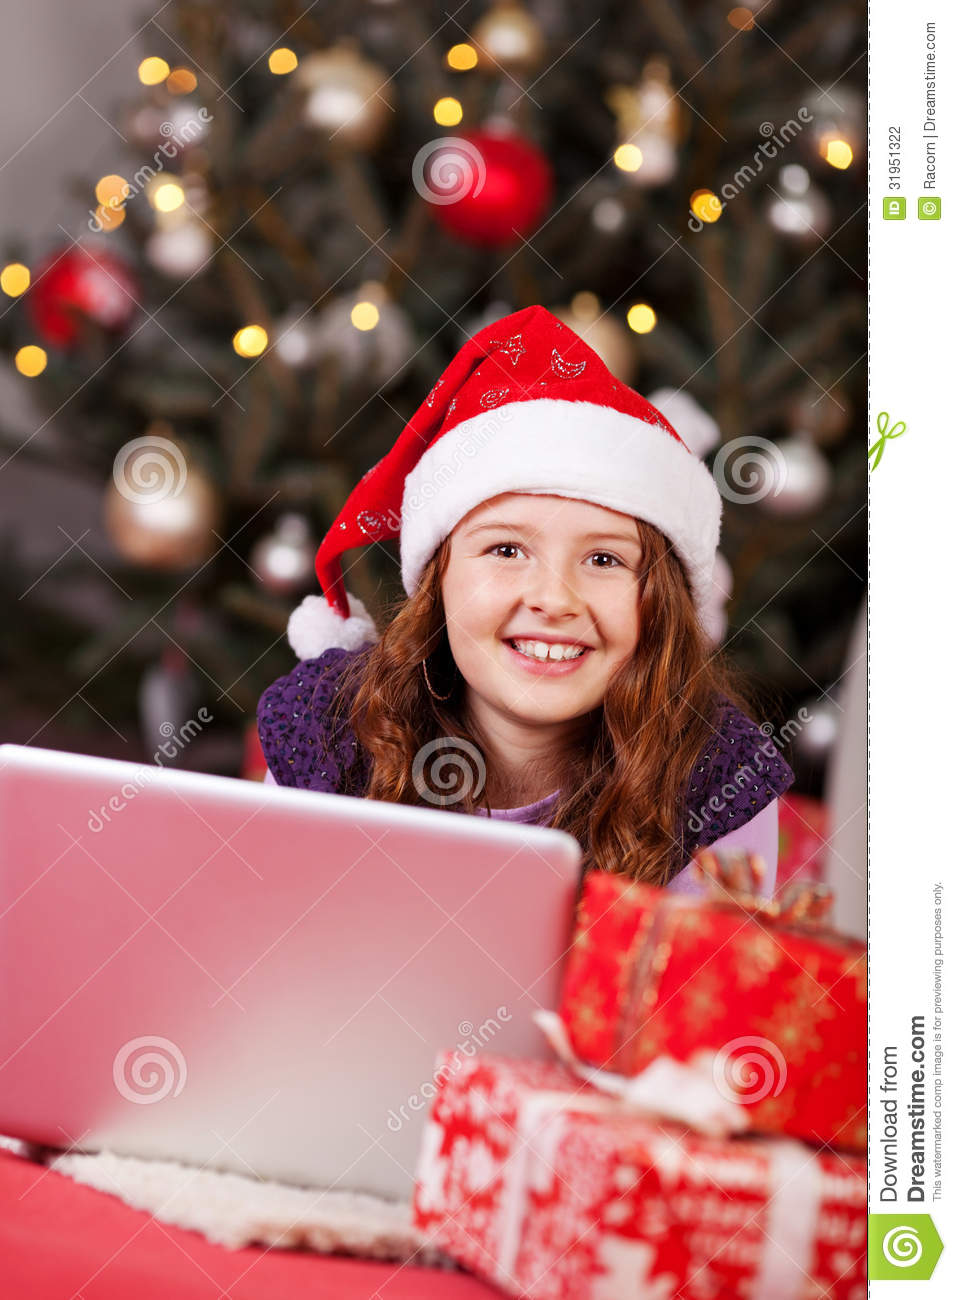 Beautiful young girl wearing a red santa hat stock photography image